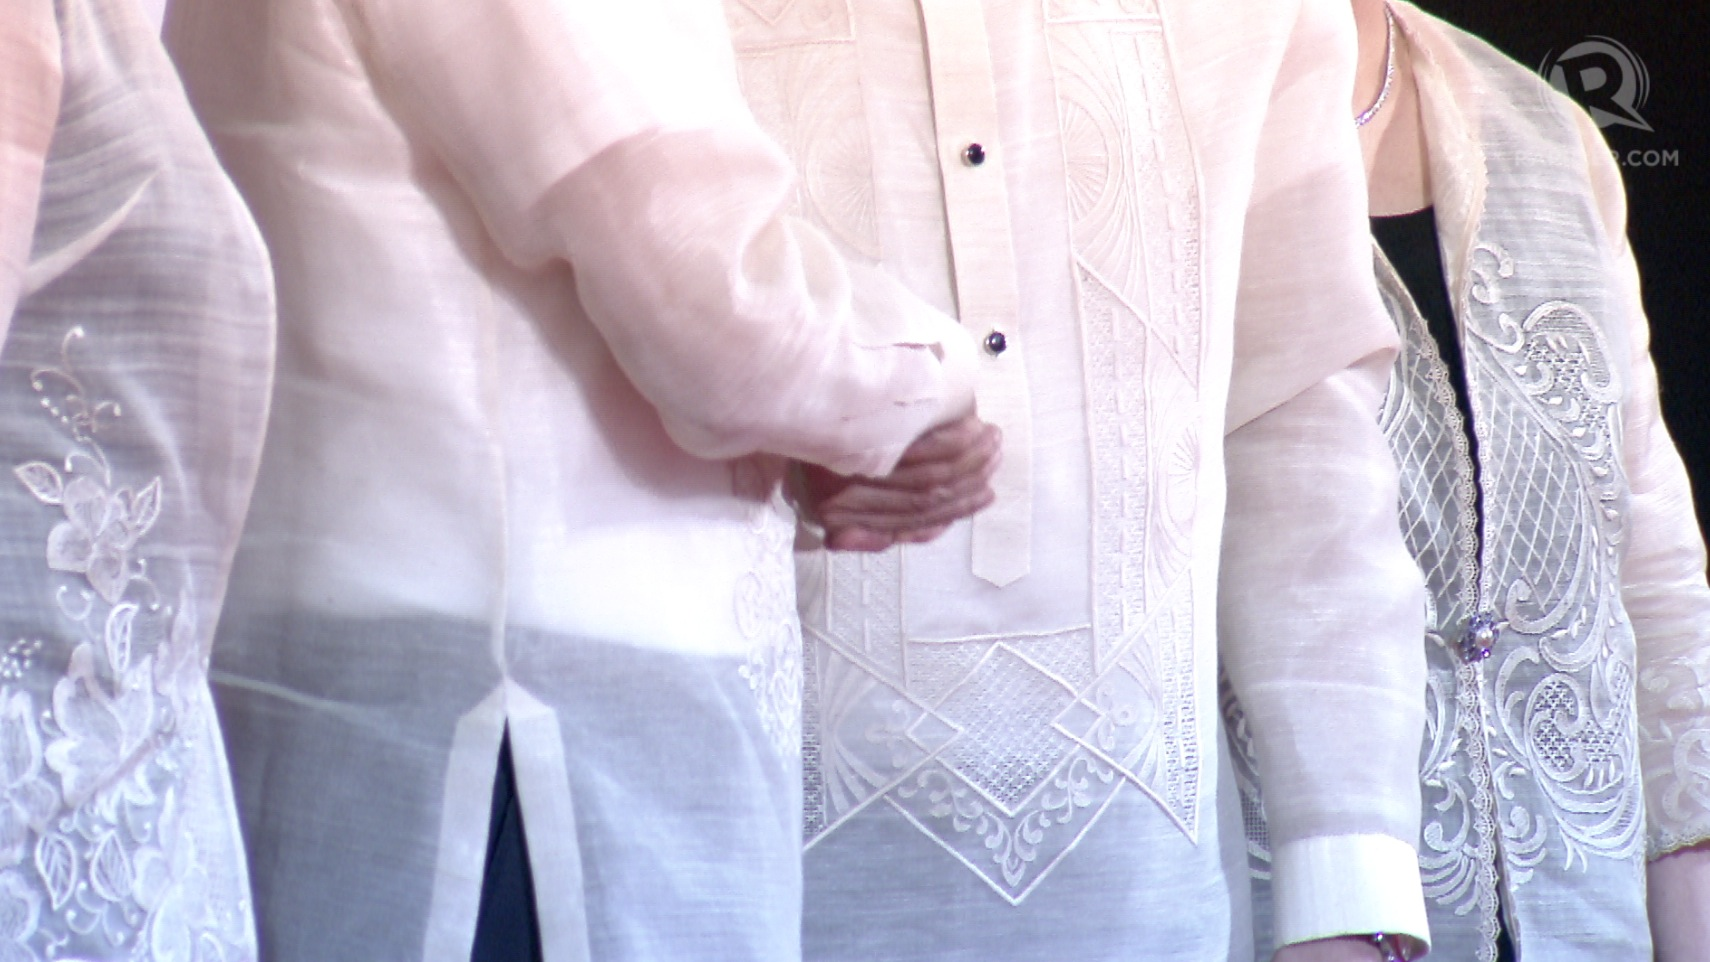 DETAILS. The embroidery on the Paul Cabral's barong designs. Rappler screengrab